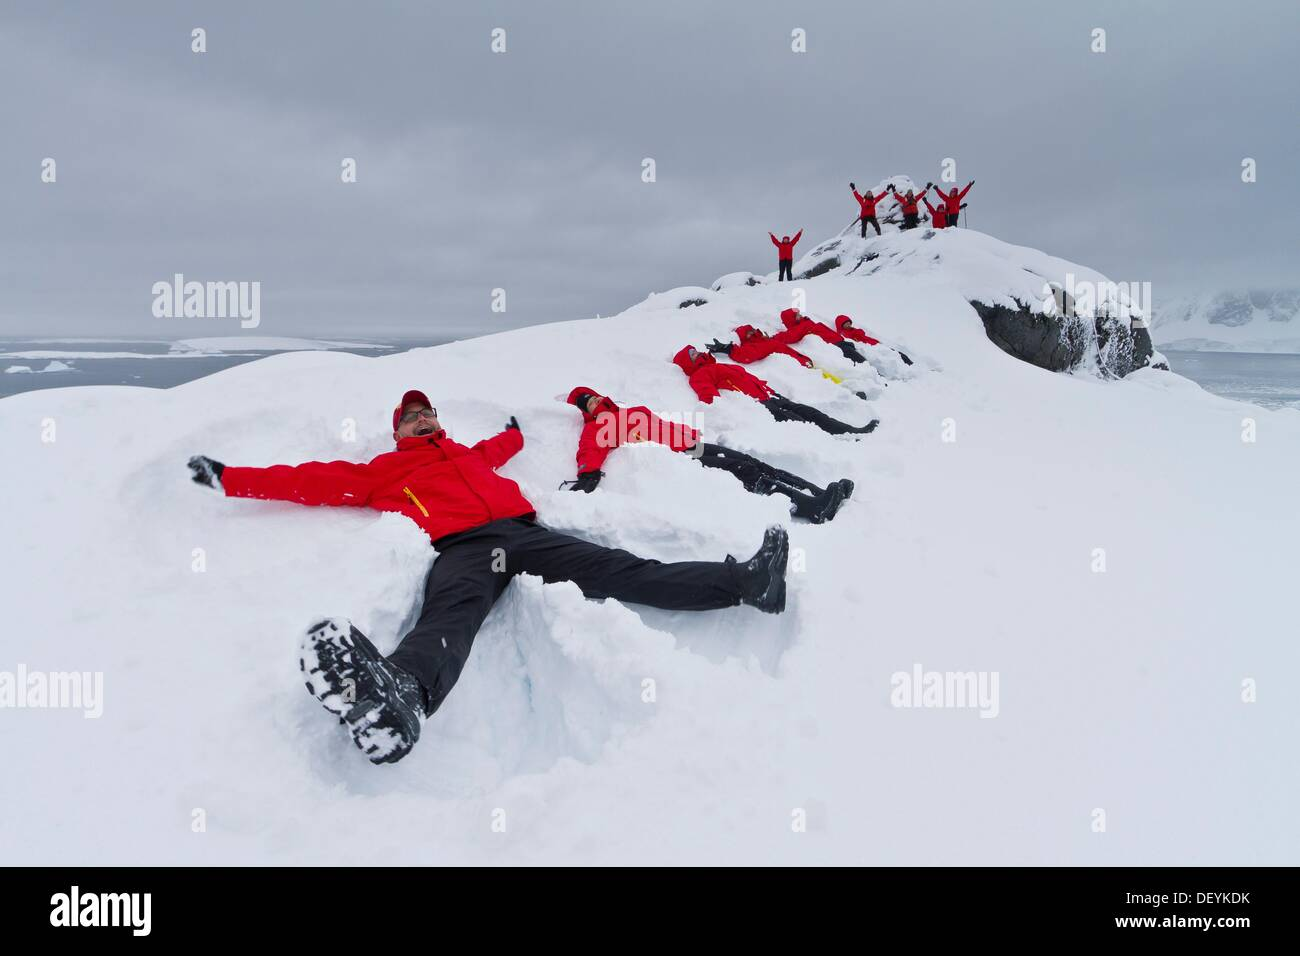 Guests from the Lindblad Expedition ship National Geographic Explorer enjoy making snow angels in fresh snow on Booth Island, - Stock Image